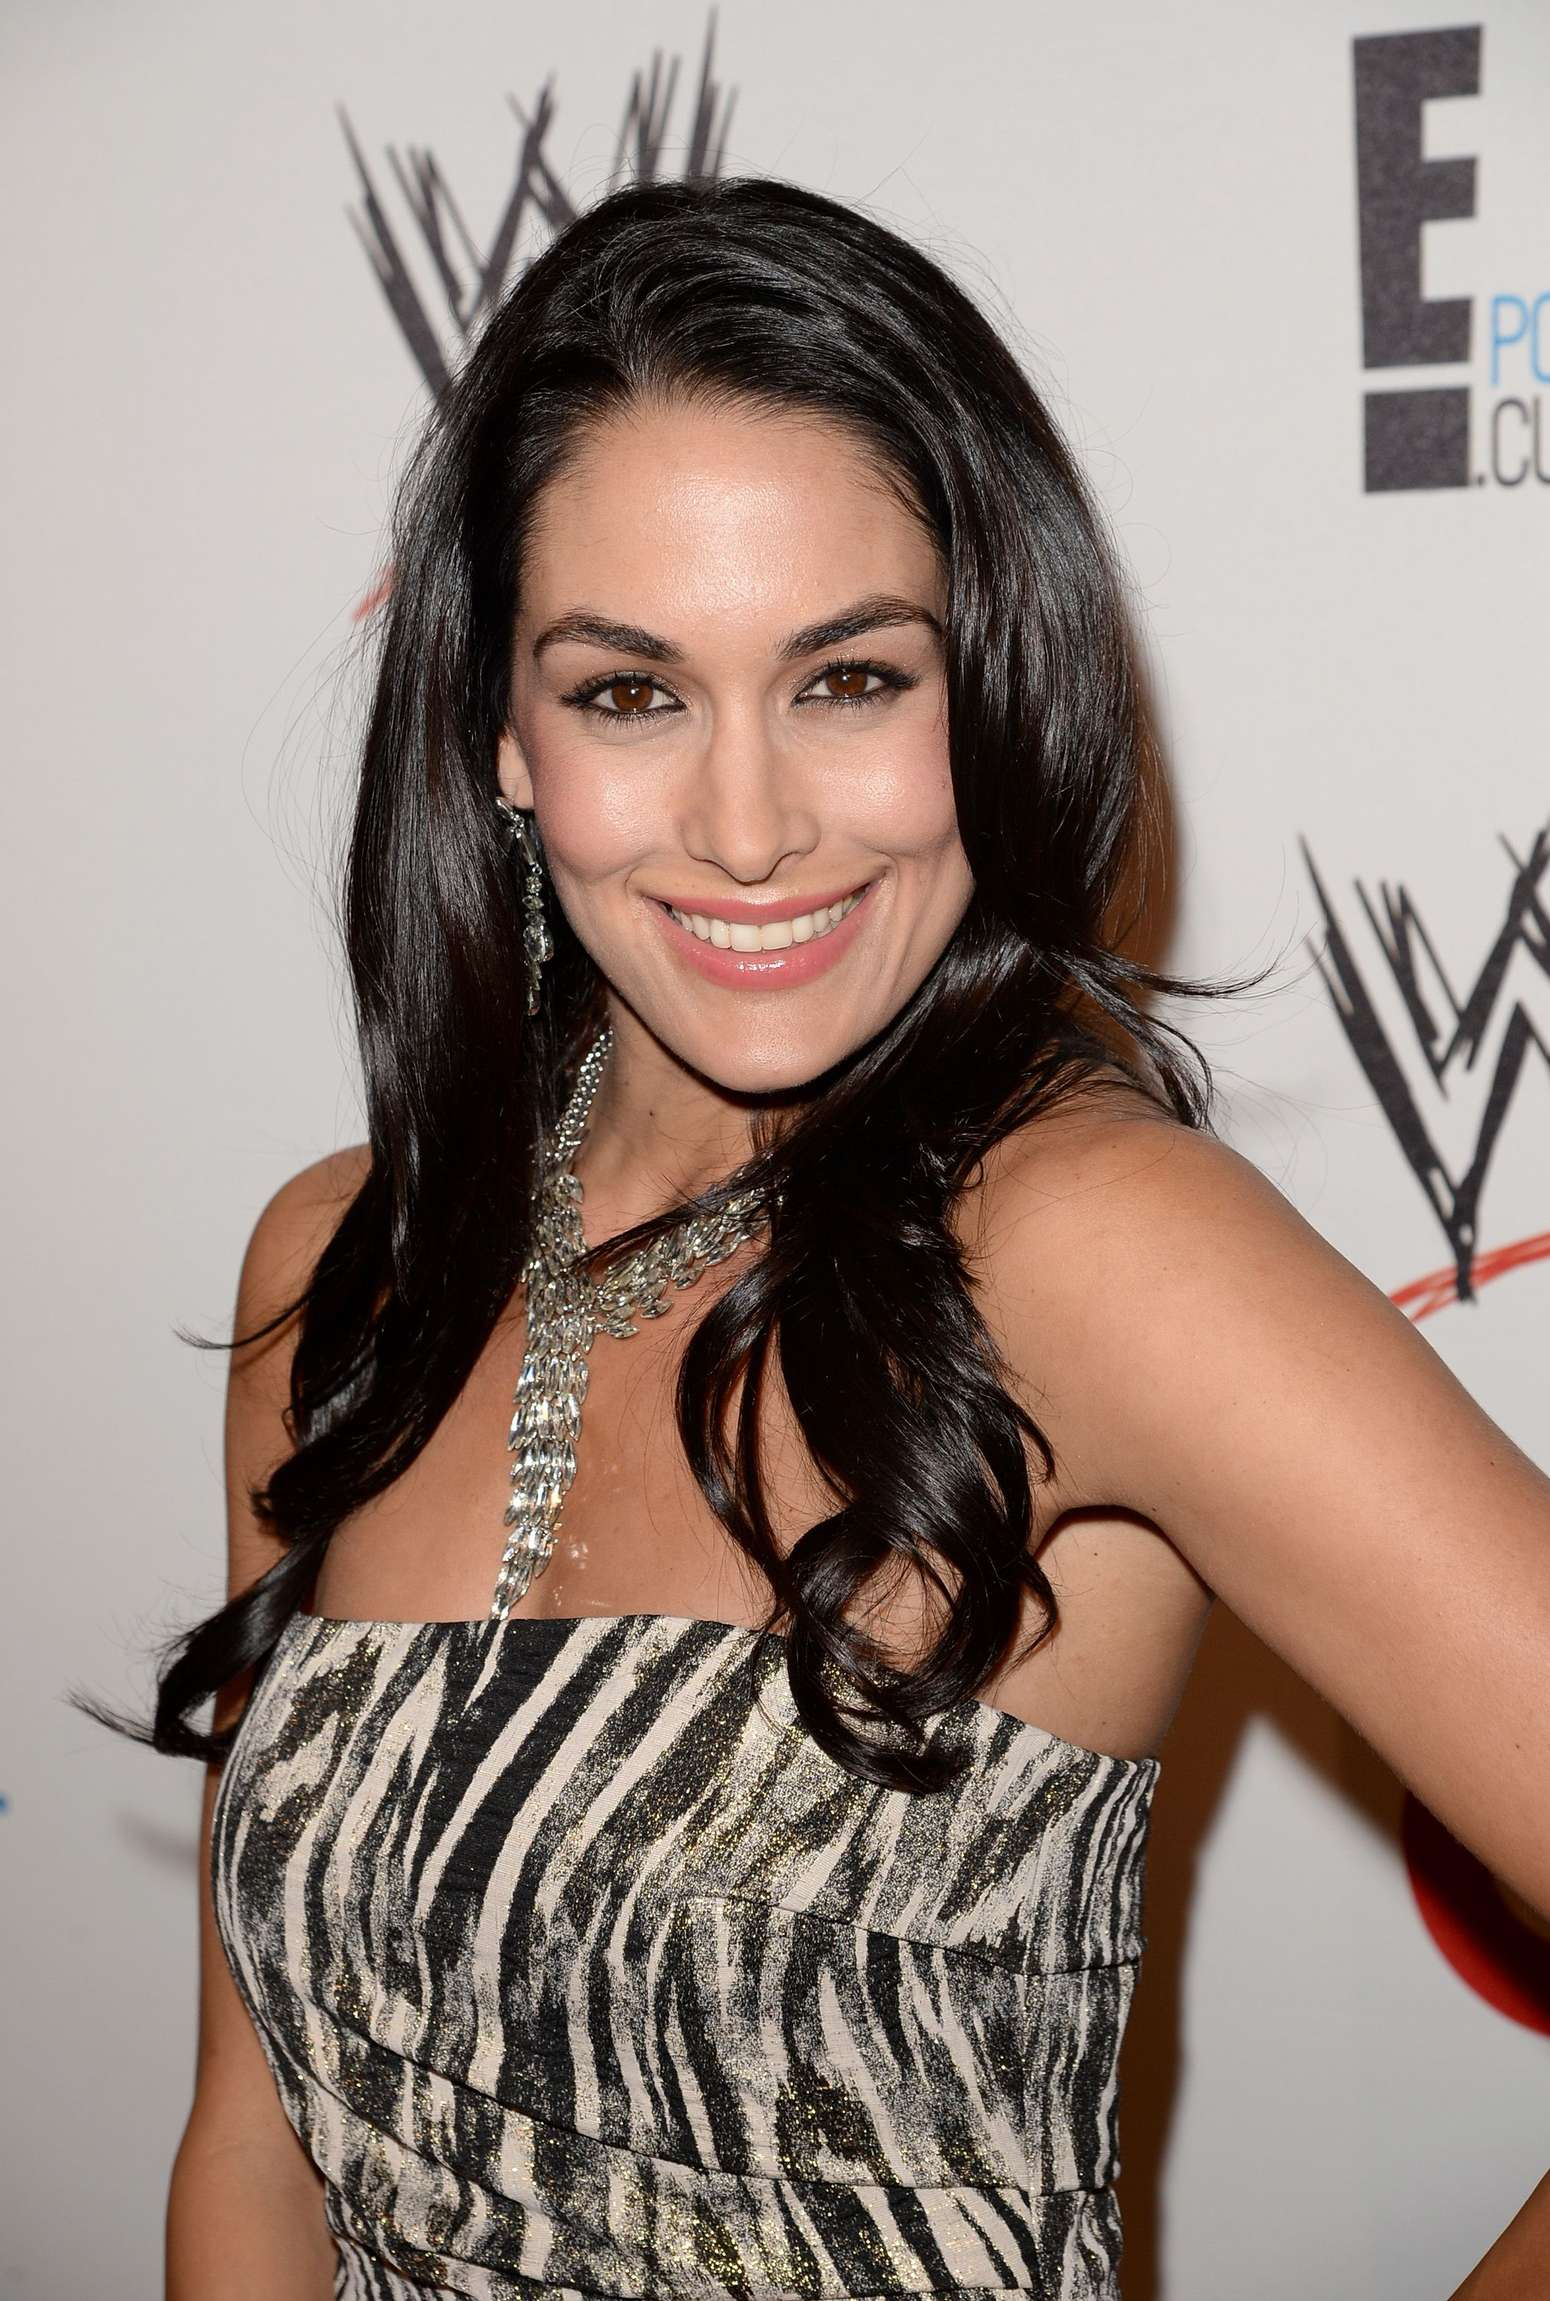 Brie Bella   2013 WWE and E Ent 1550x2301